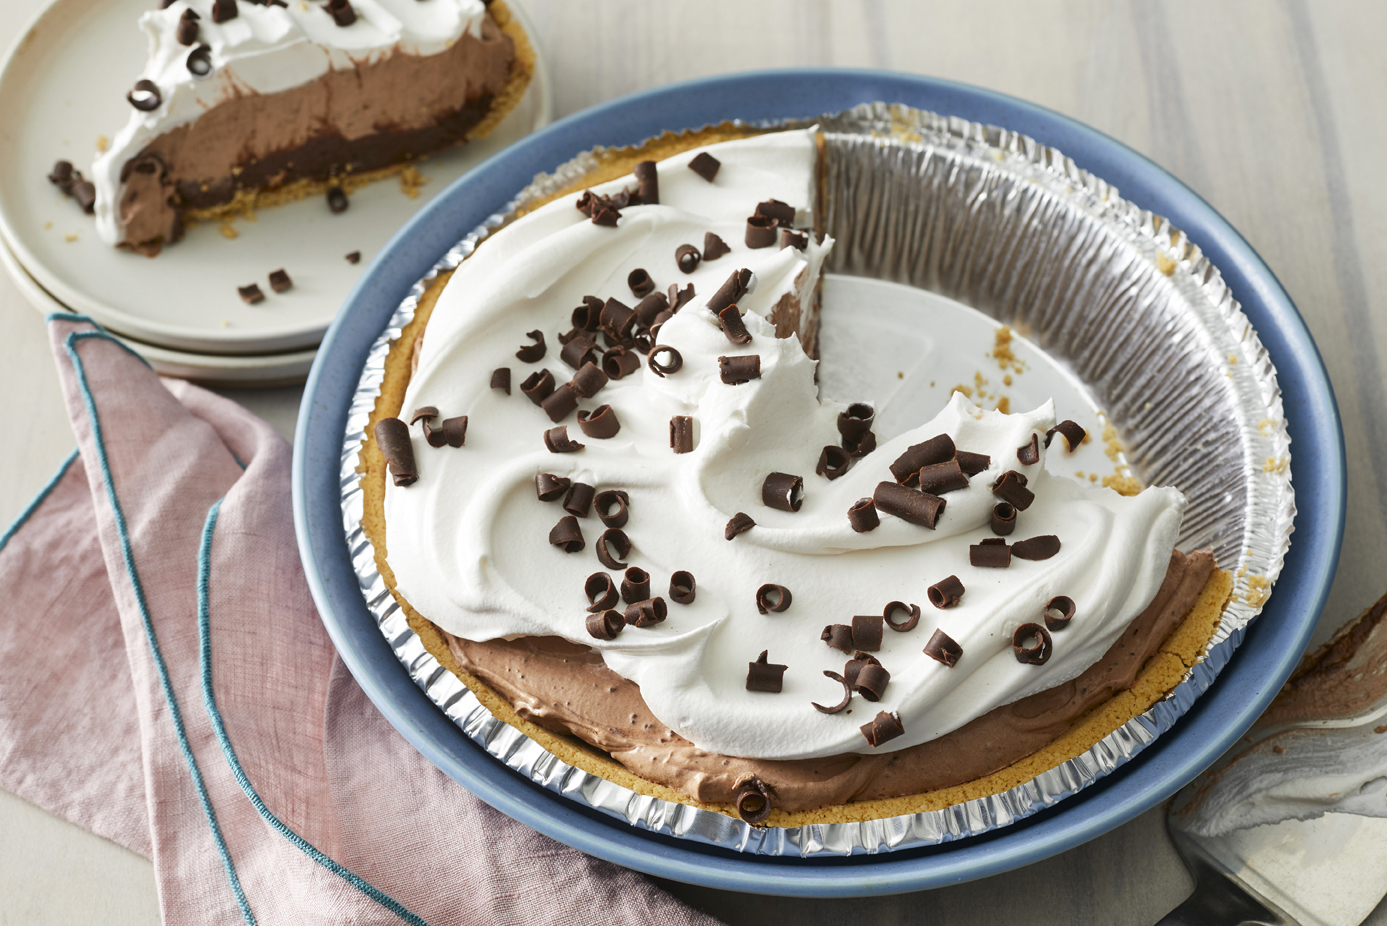 Krissy's Easy Chocolate Triple Layer Pie. A slice is out and plated in the background.